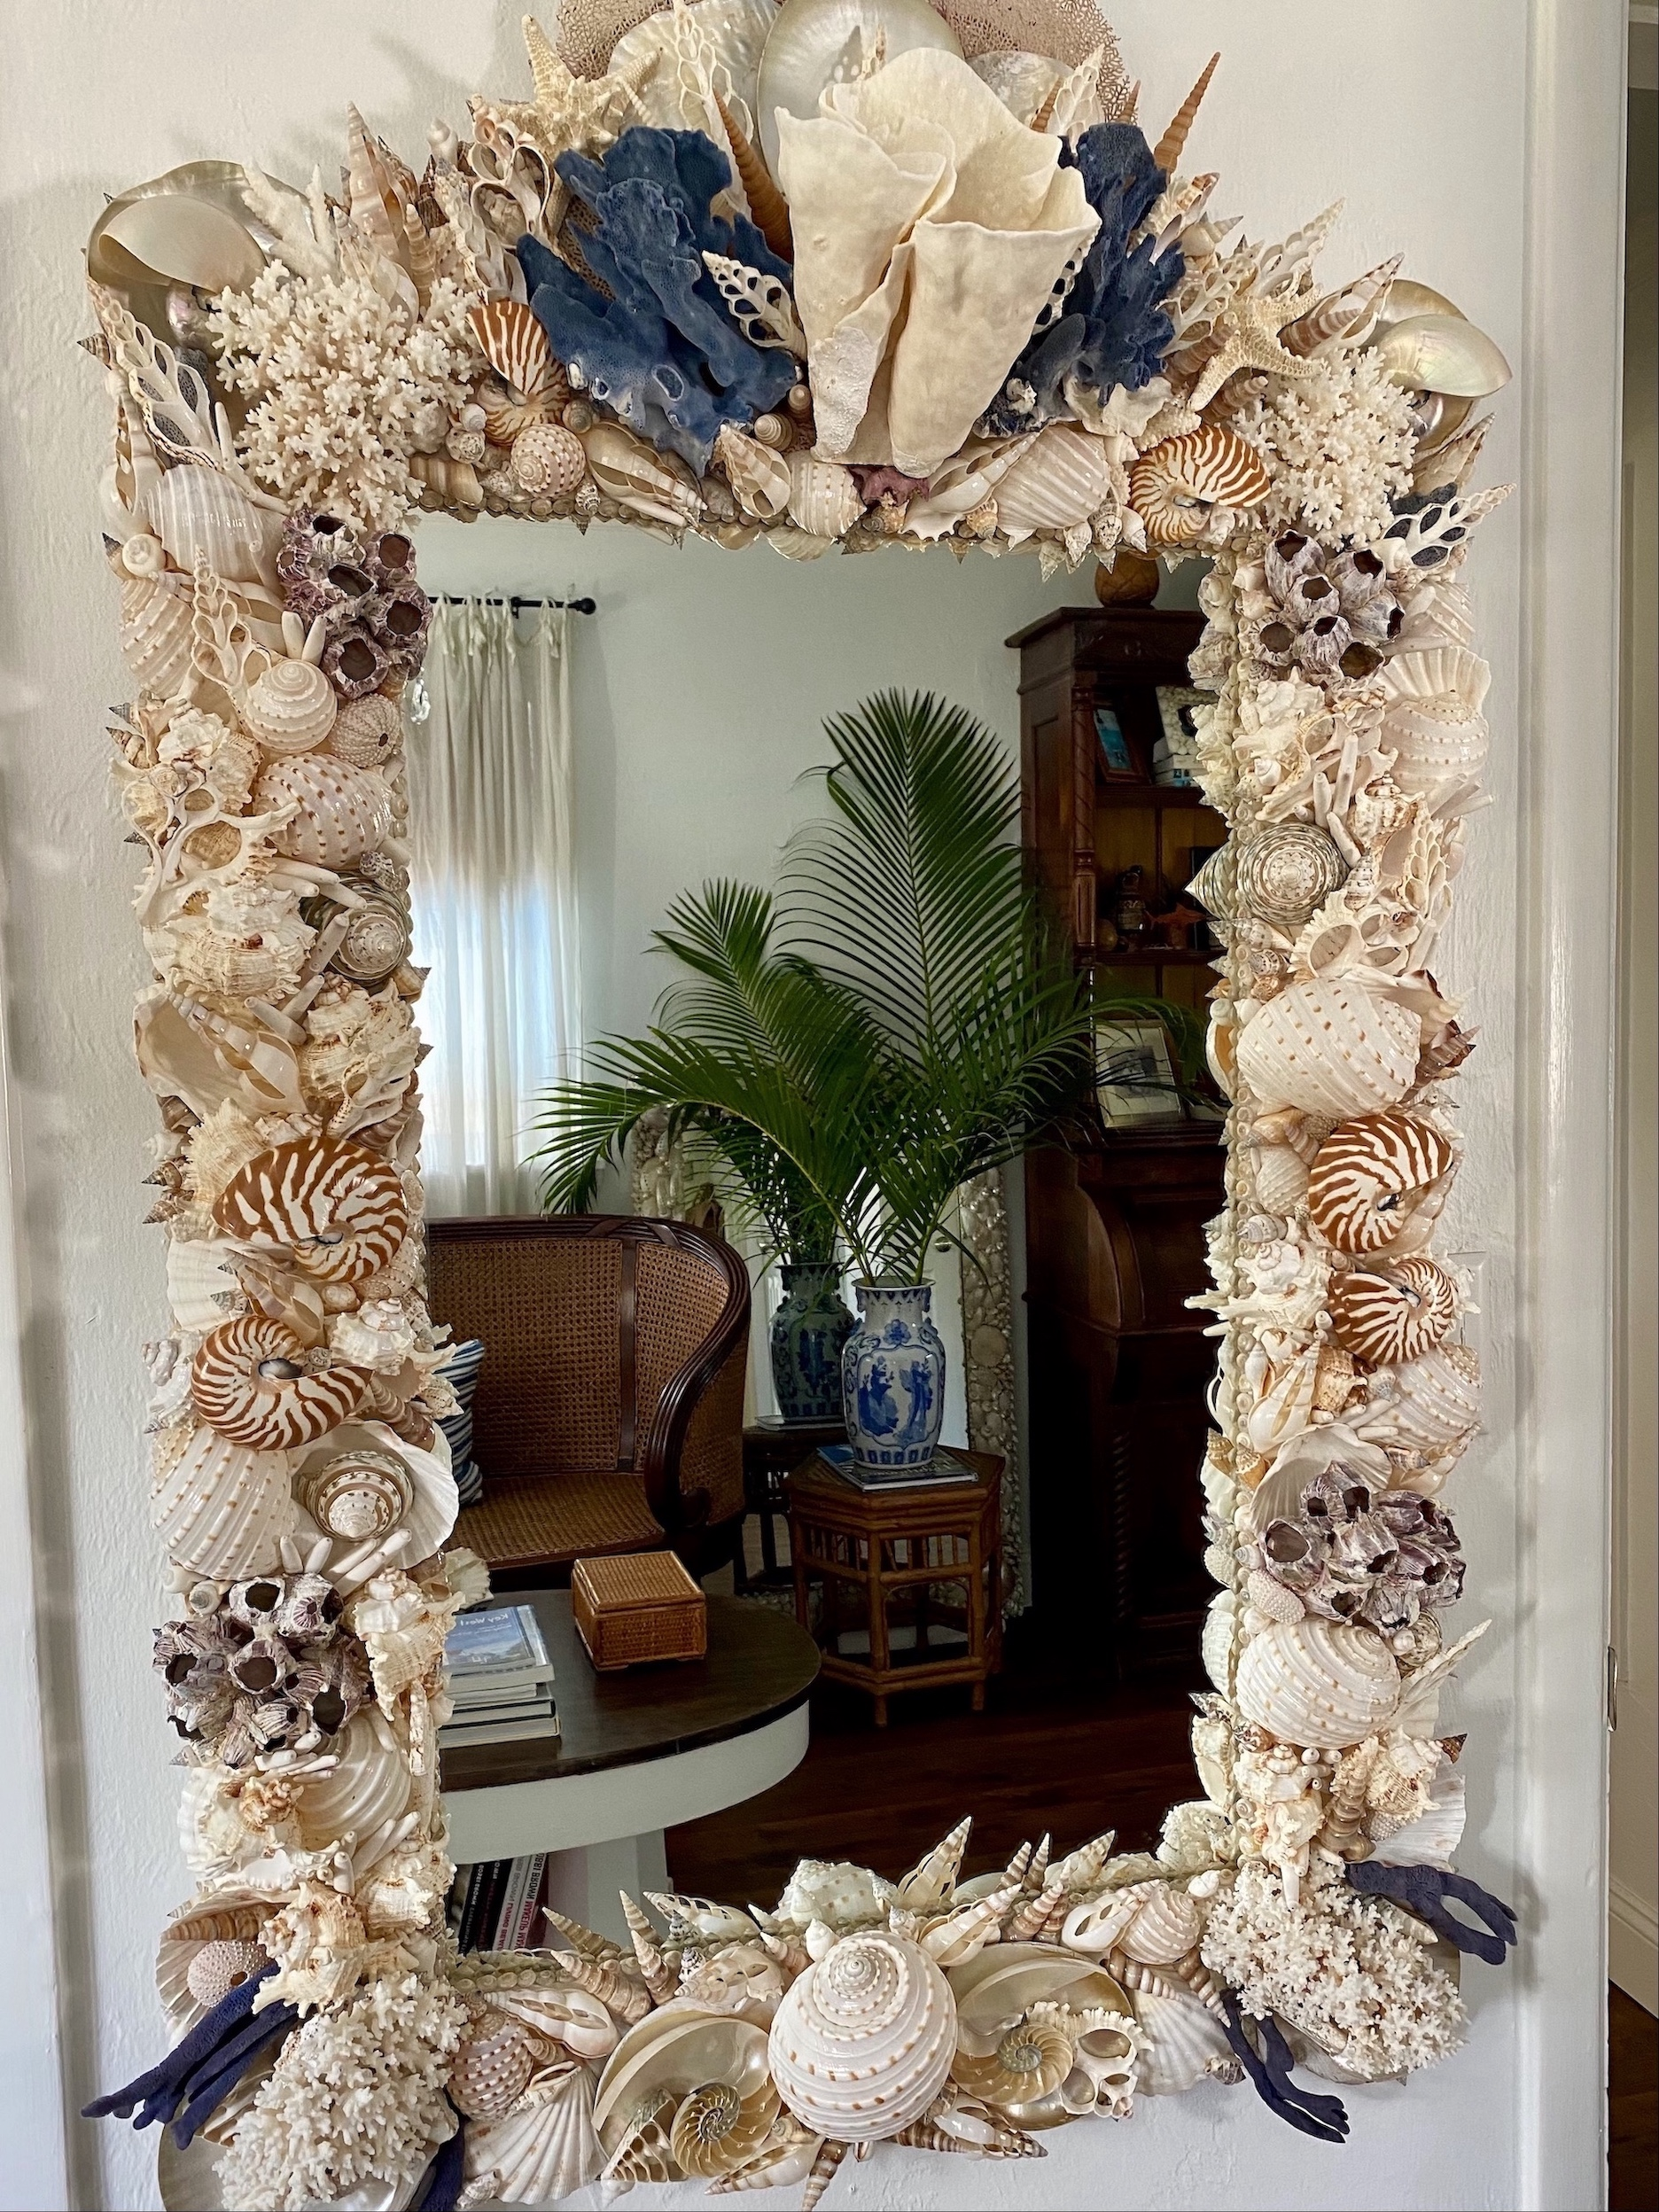 Large mirror made with many, many, many with and tan seashells has blue and white coral crowning the top. the reflection shows dark wood furniture and a palm tree.